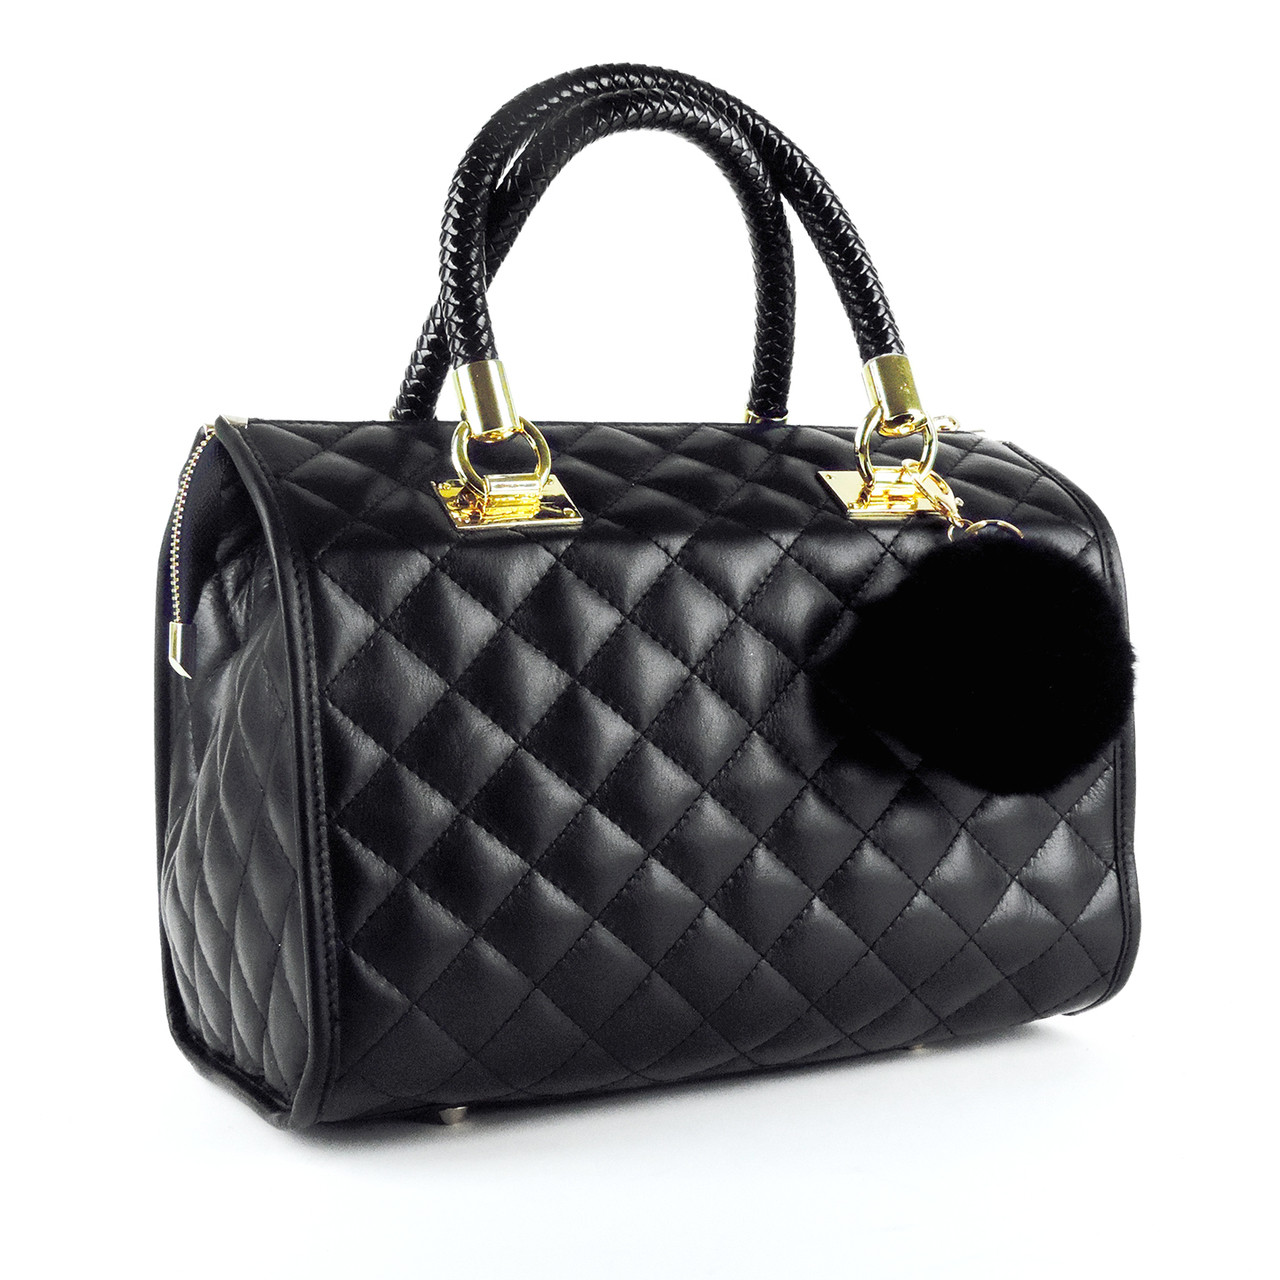 handbags quilt com for fashion rockstud leather quilted designer spike women handbag pin luxury mytheresa